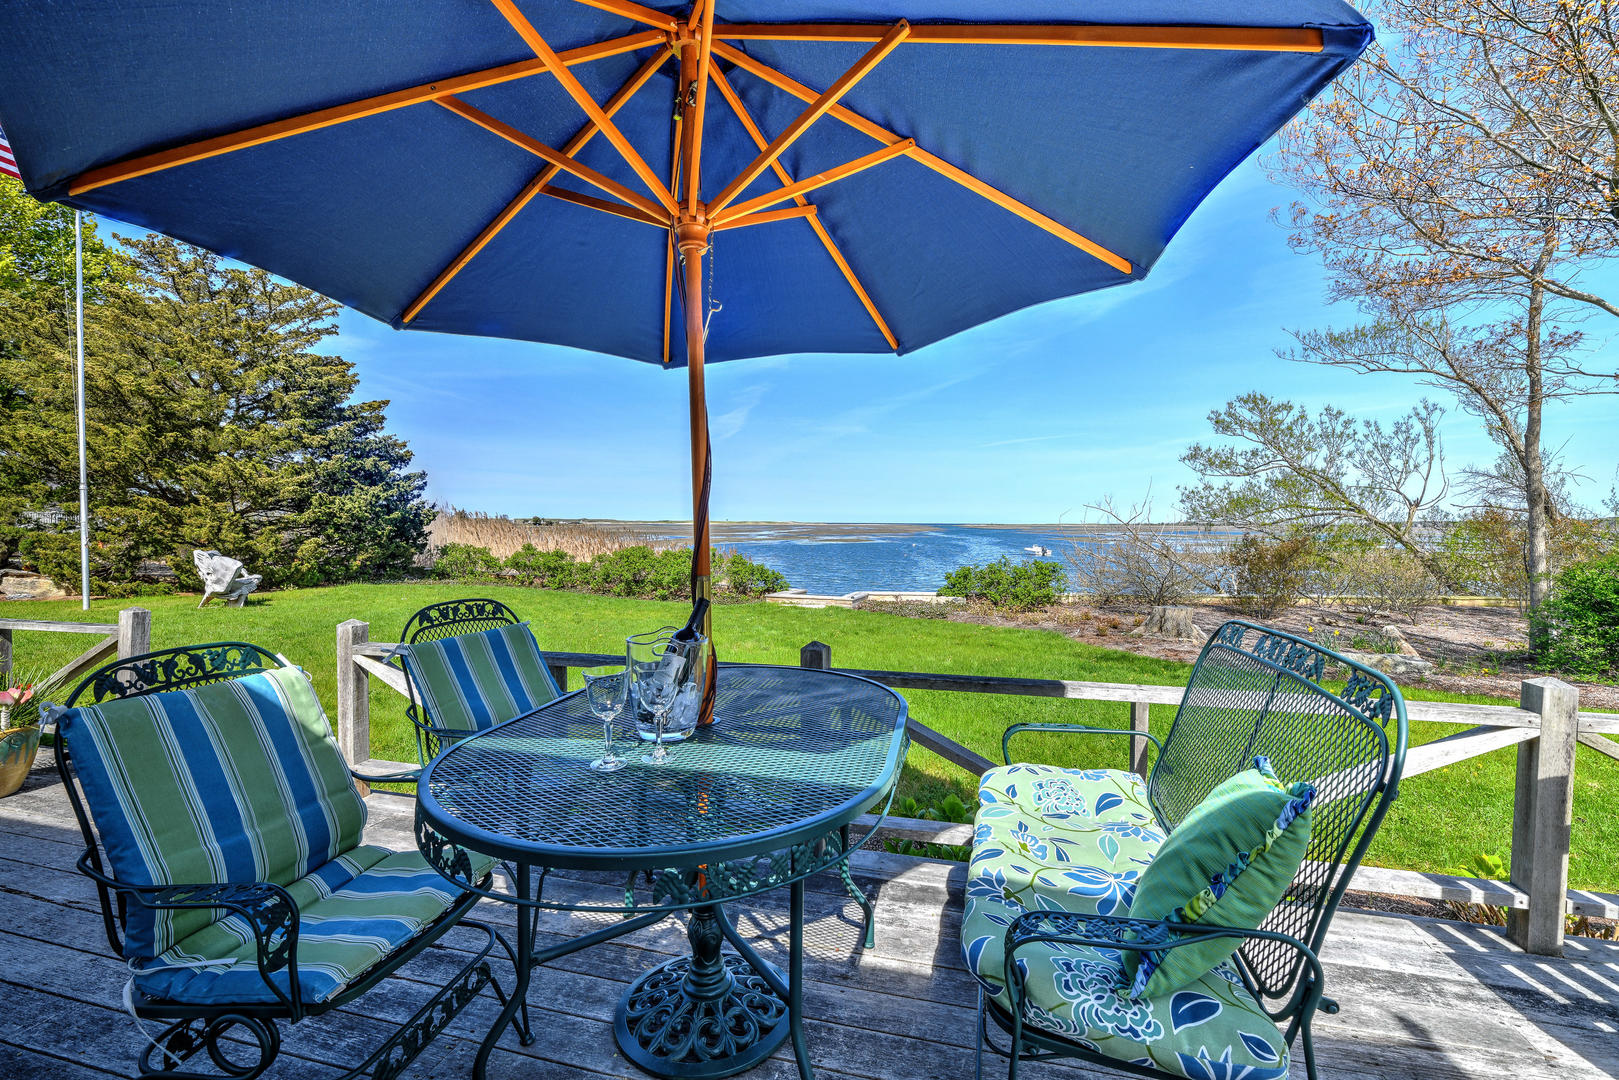 Cottage Rental in Tranquil setting along tidal creek perfect for kayaking in Cape Cod